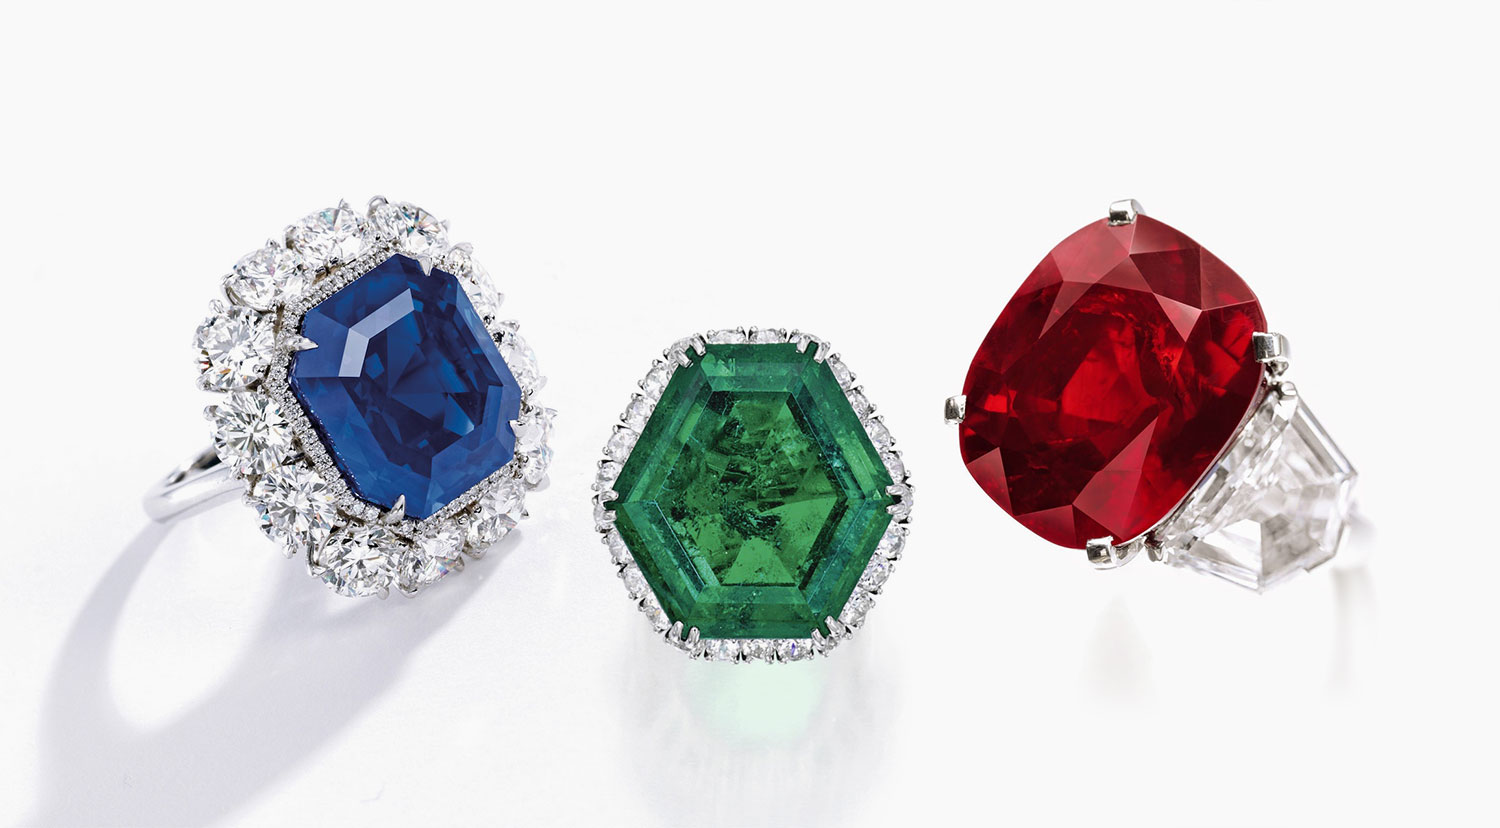 The Identification of Rubies, Sapphires and Emeralds